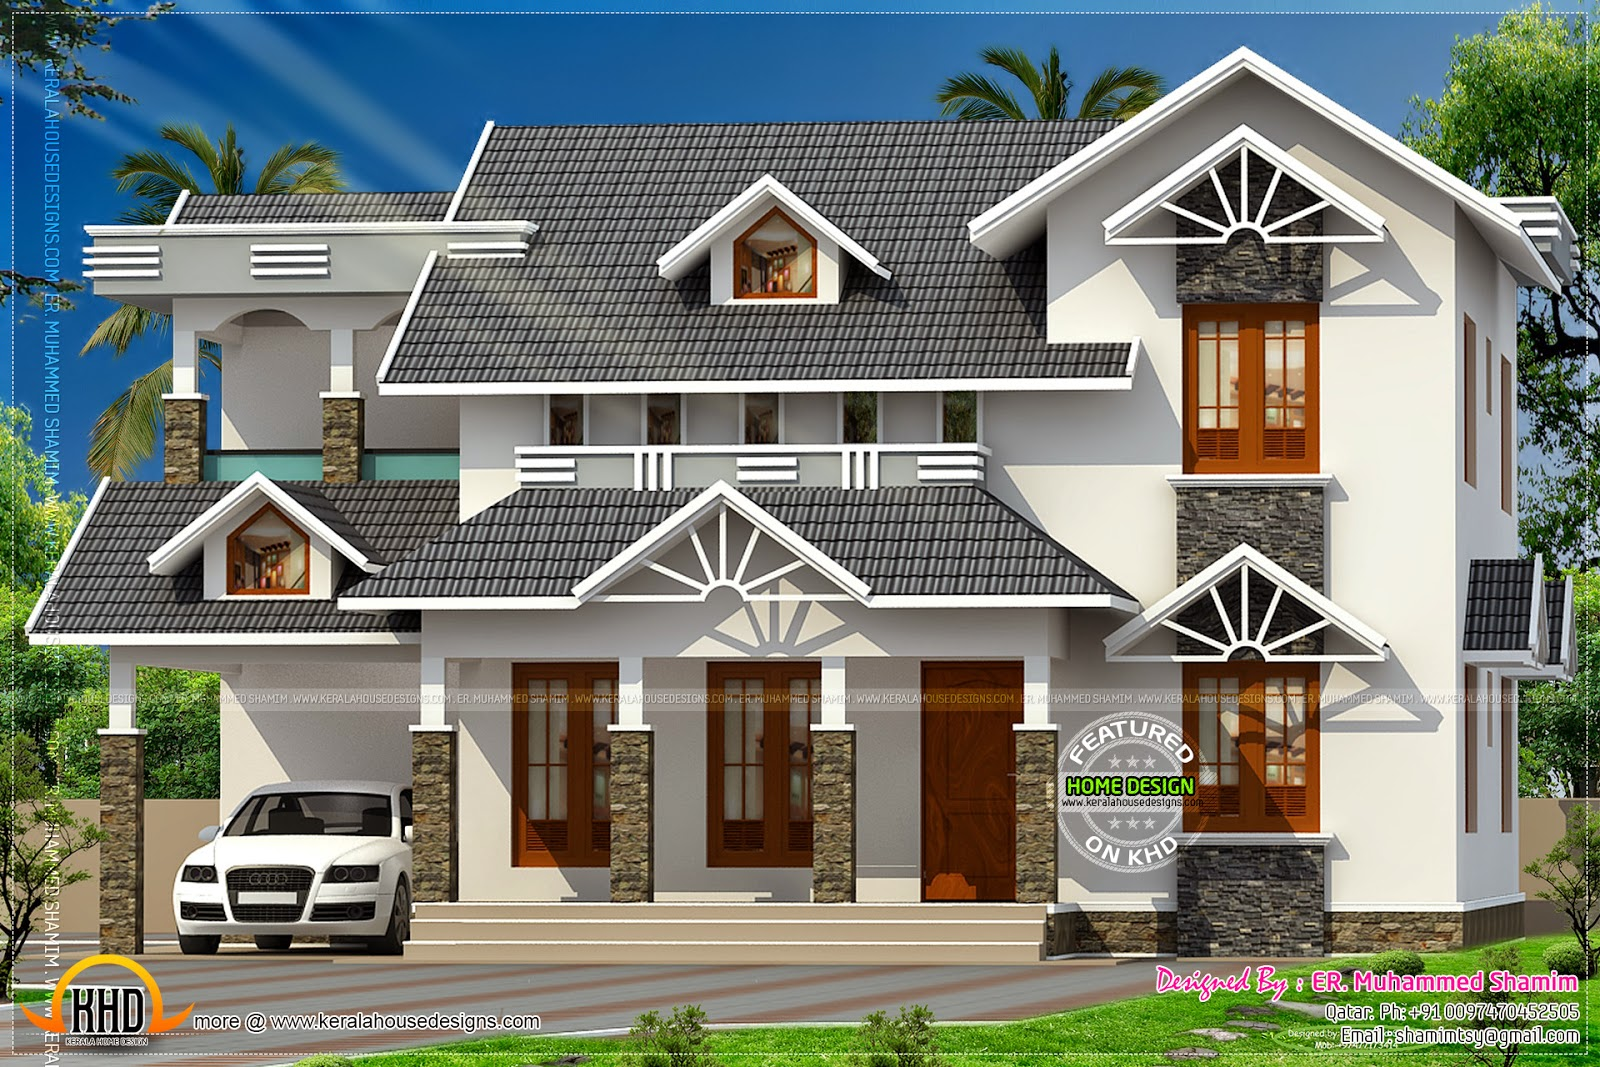 Nice House Design july 2014 - kerala home design and floor plans